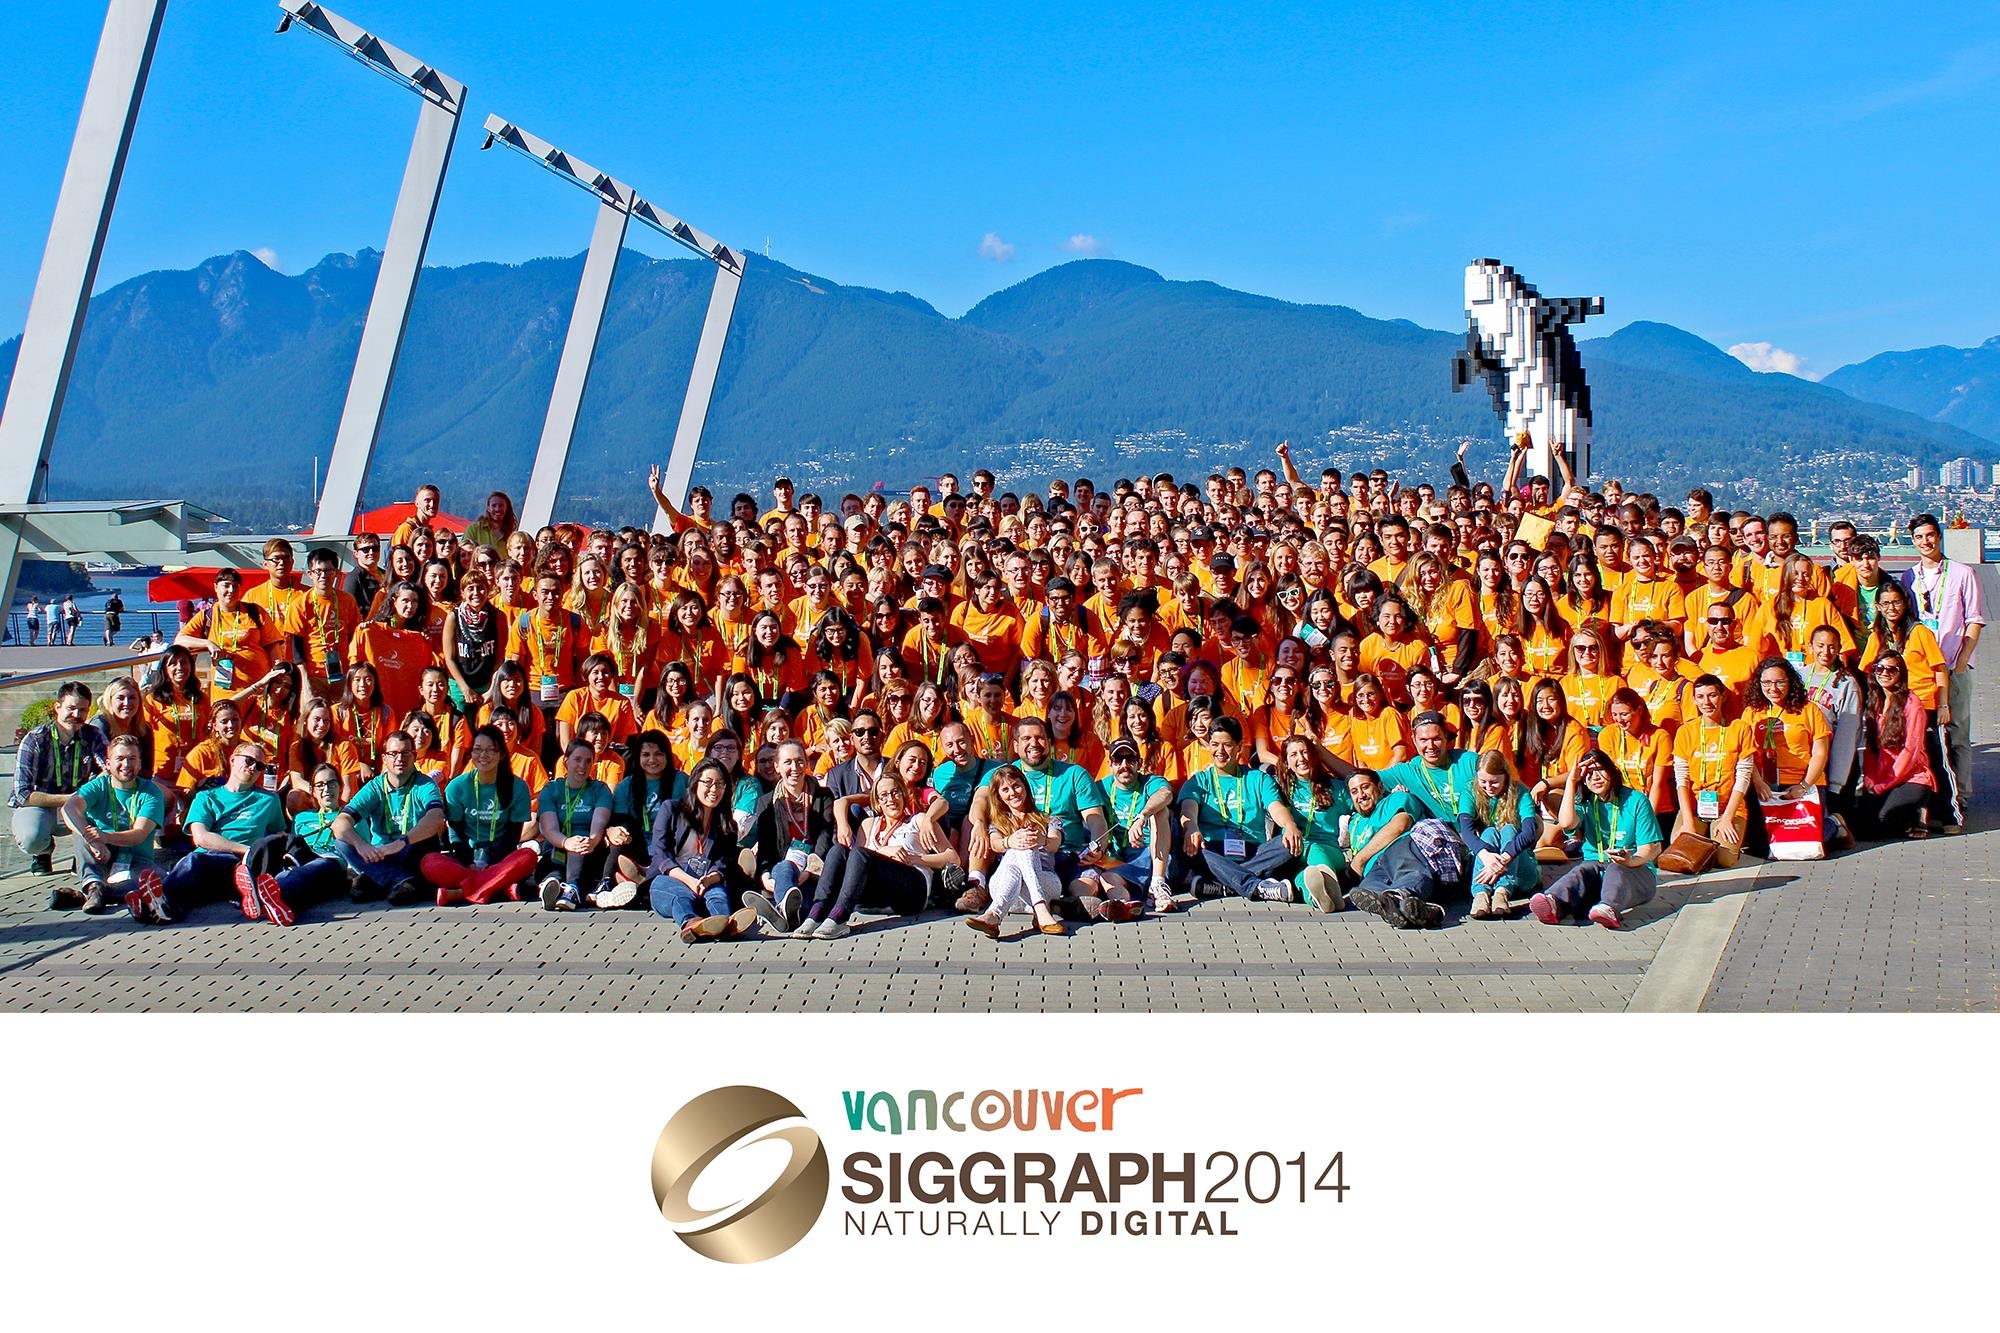 My Experience with SIGGRAPH